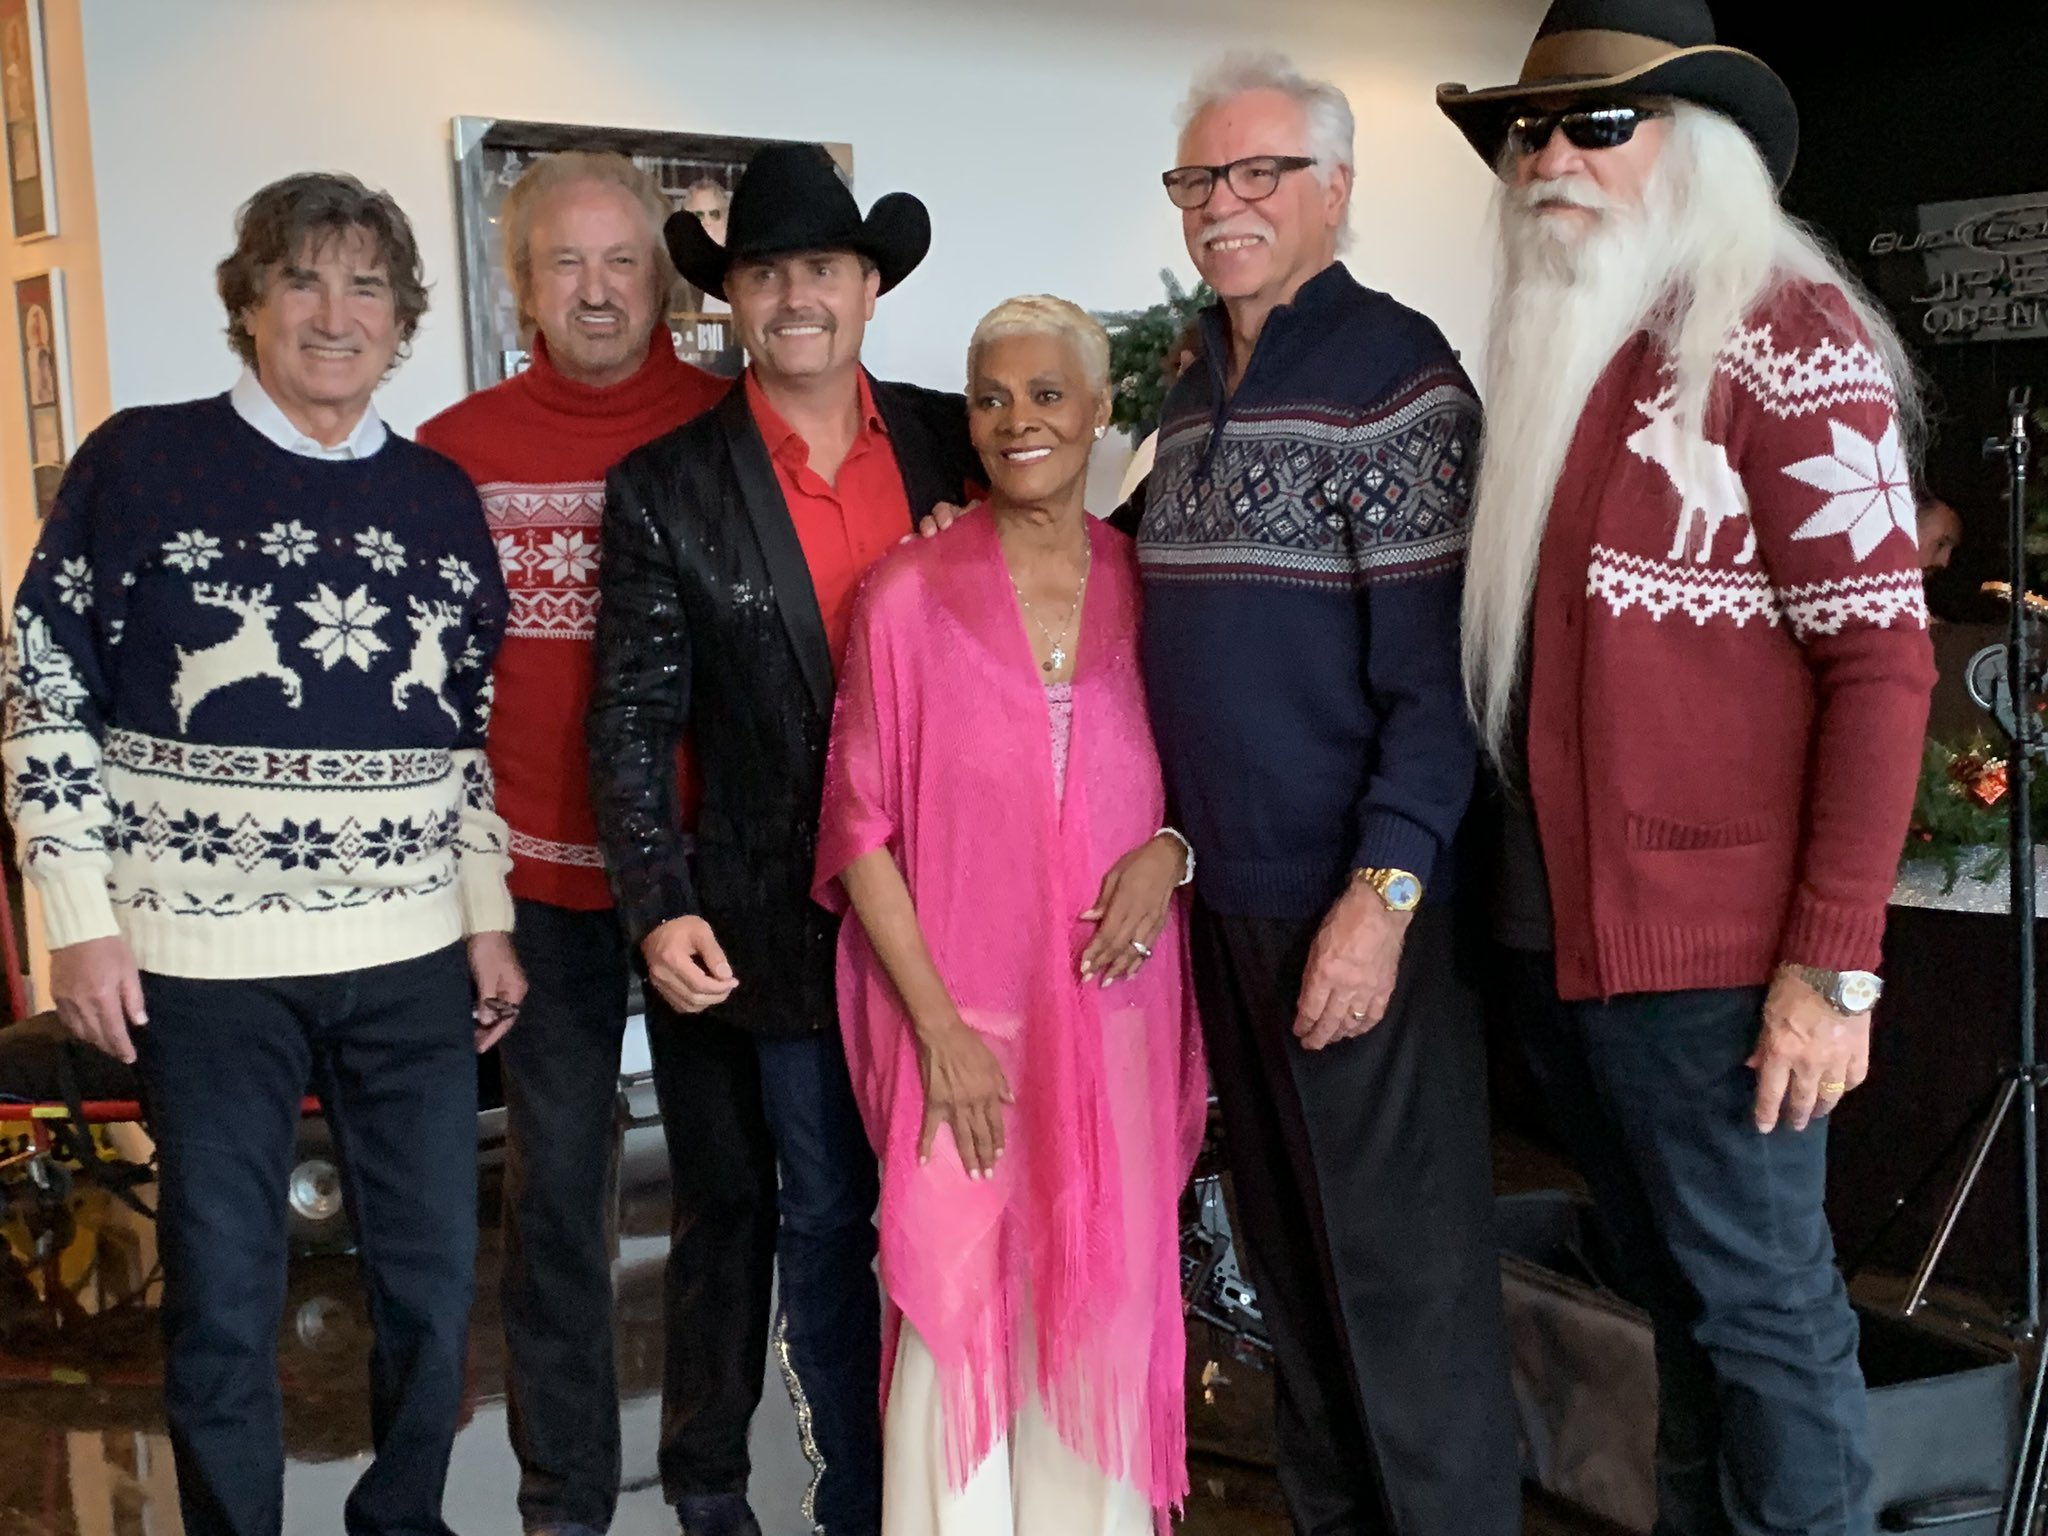 Not everyday .... @oakridgeboys @johnrich @_DionneWarwick  ... #JingleBells https://t.co/Ikwb1URTwC